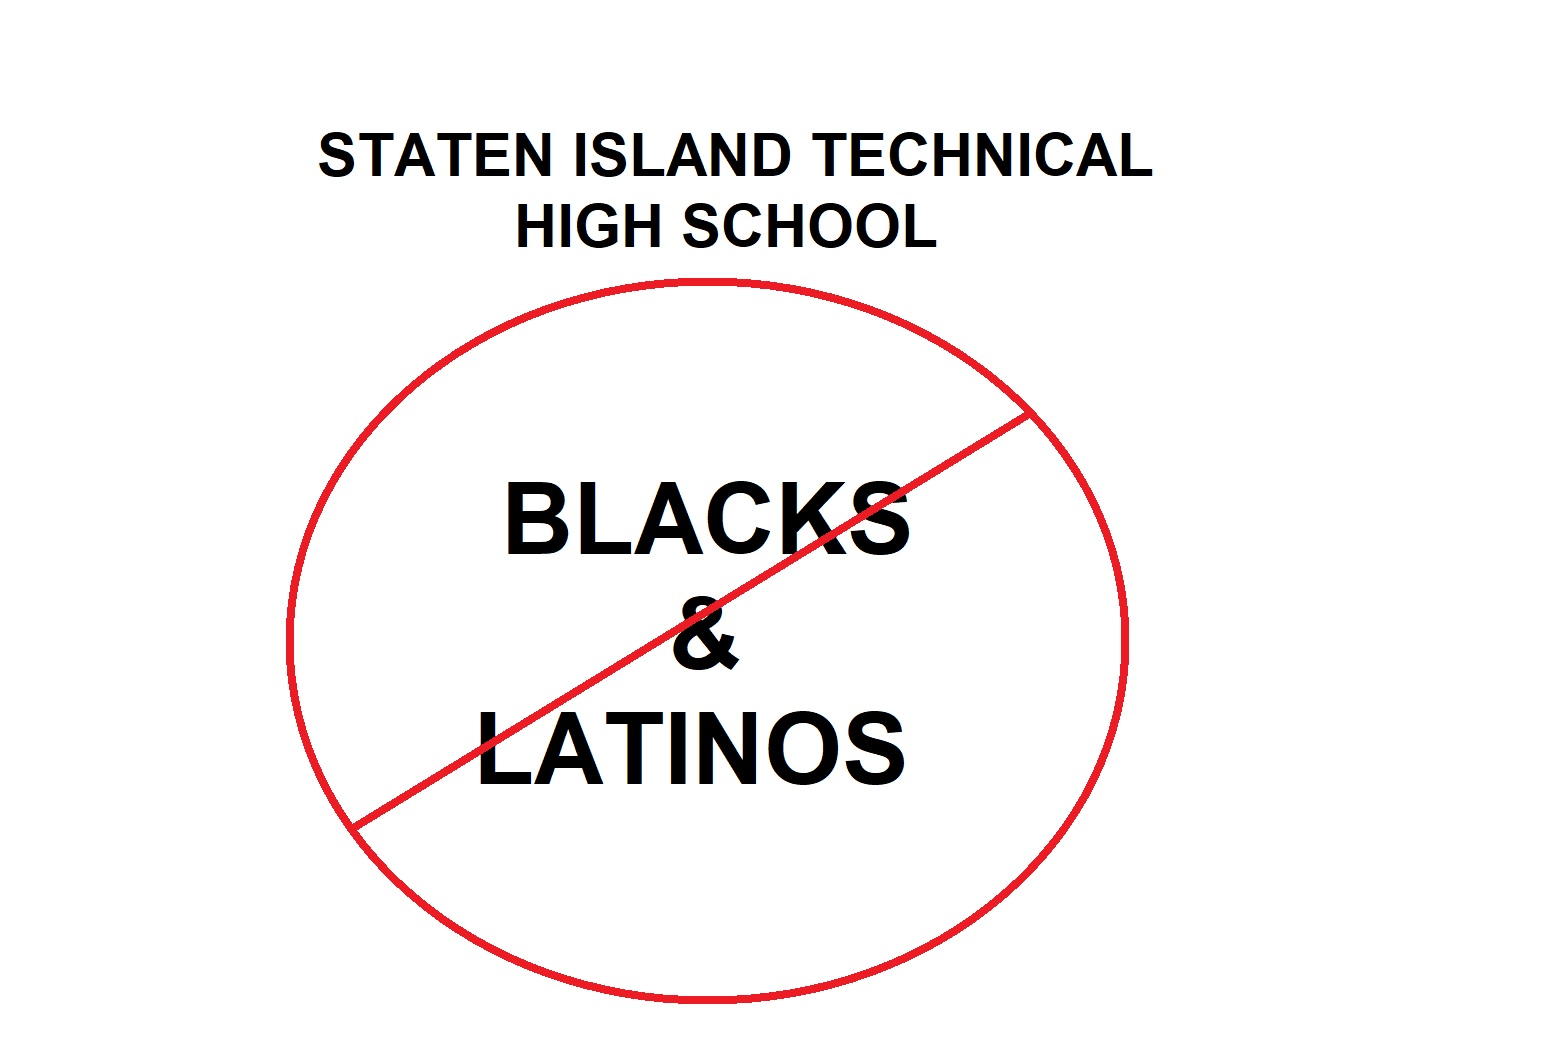 Staten Island Technical HS Accepted Only 1 Black and 11 Hispanic Students